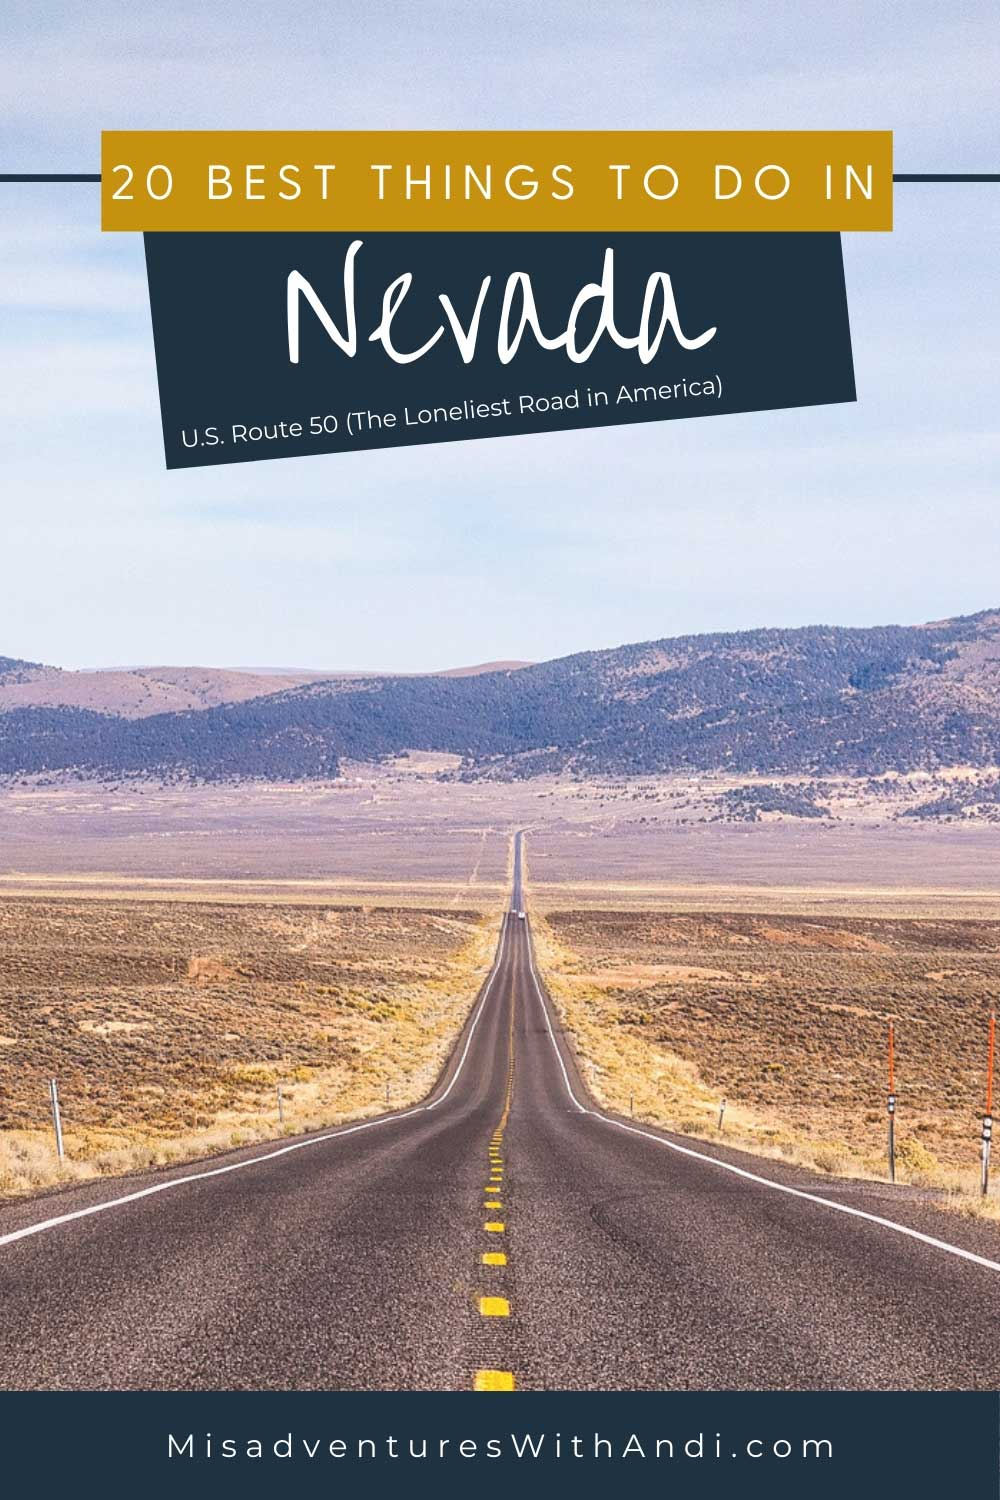 20 Best Things To Do in Nevada